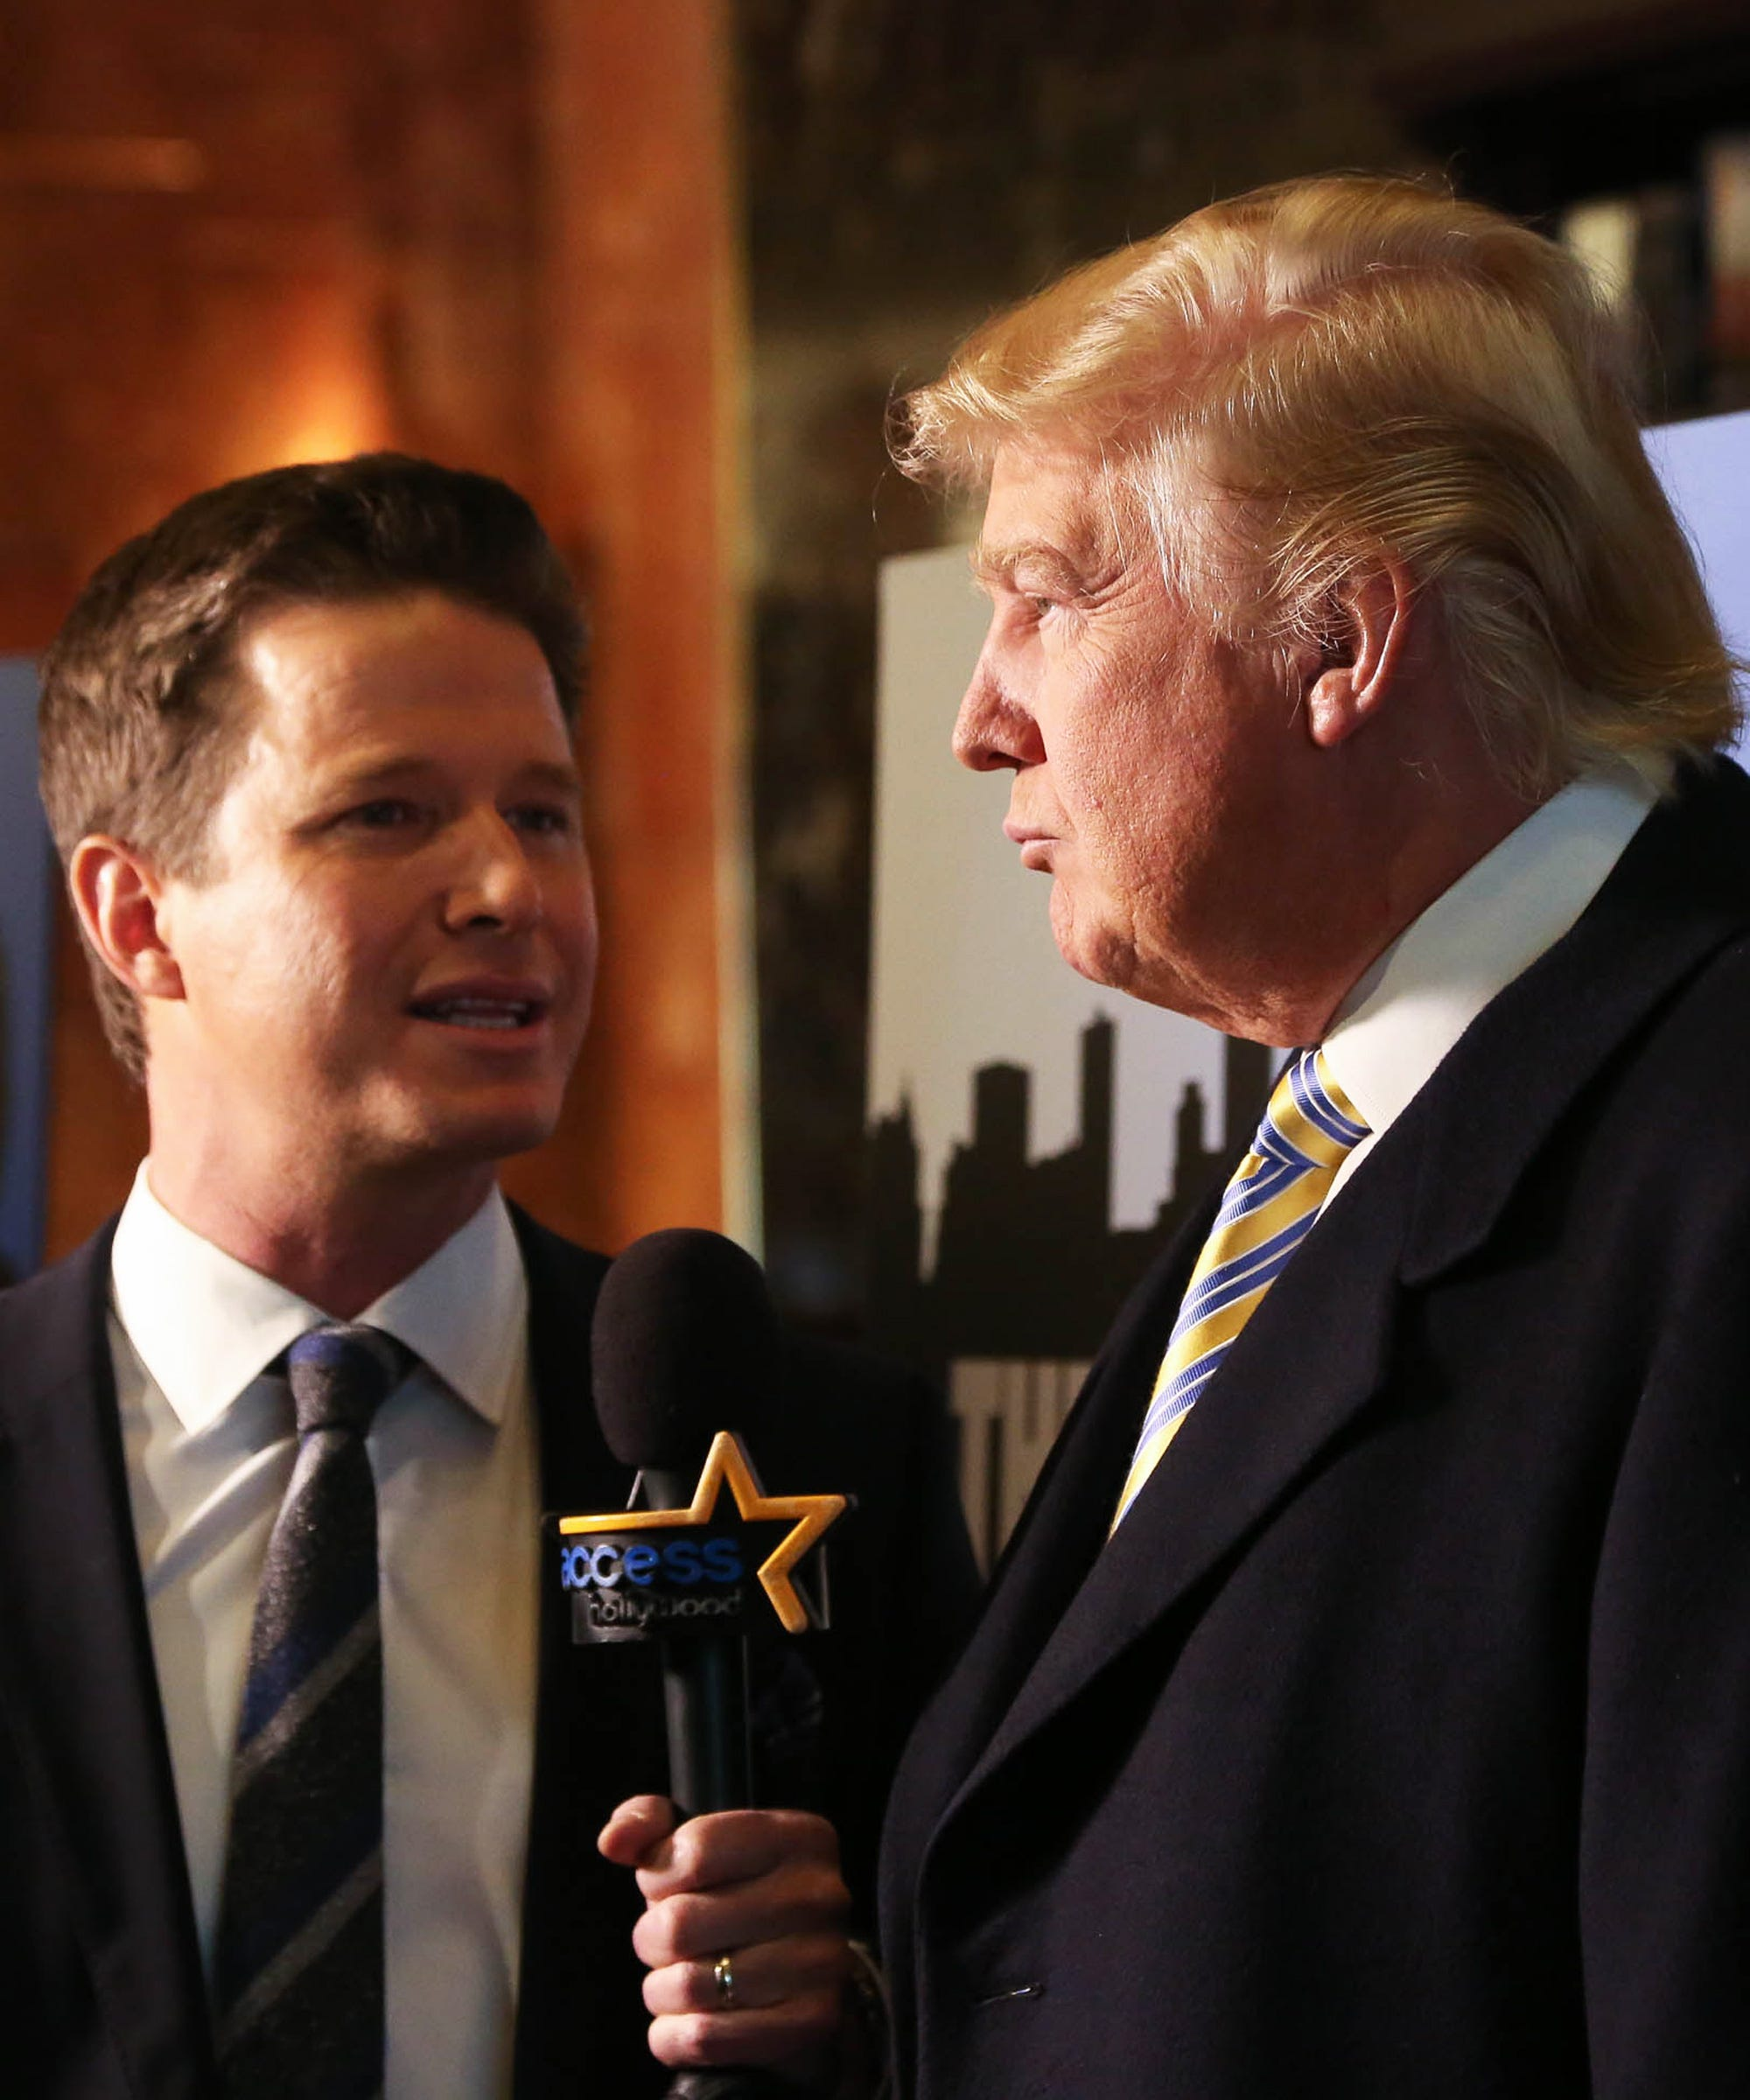 Billy Bush Isn't Here For Trump's Access Hollywood Denial, But He Shouldn't Be Let Off The Hook Either